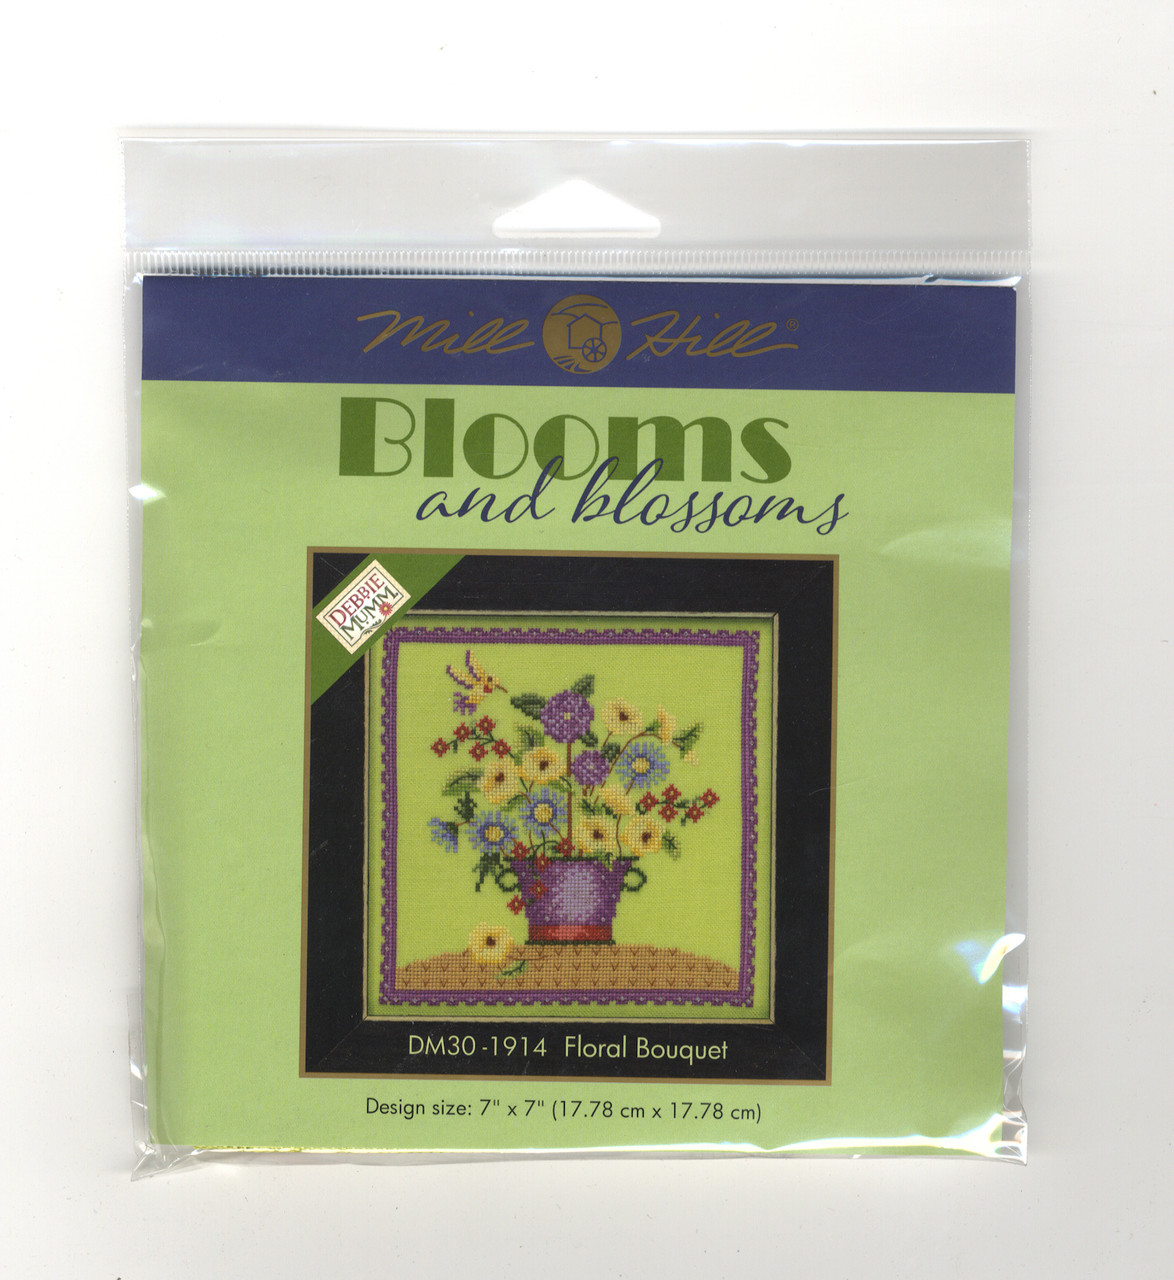 2019 Mill Hill Debbie Mumm Blooms & Blossoms Series (Set of 4 Kits)